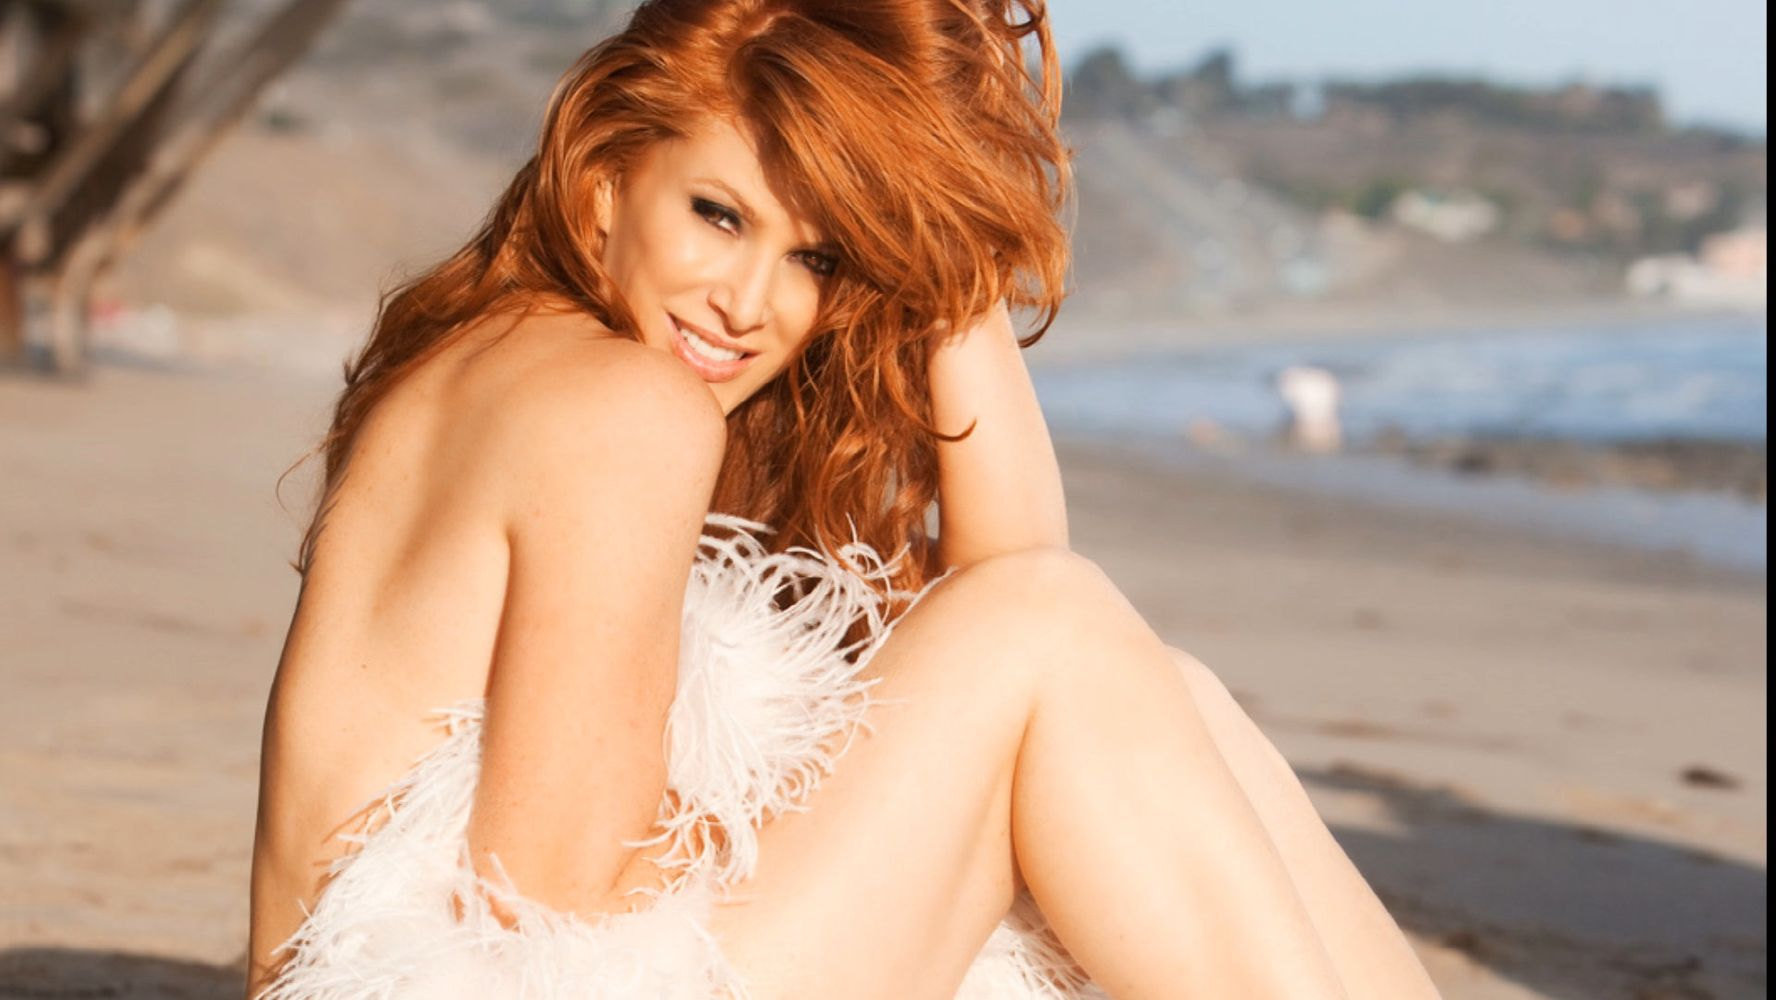 Angie Everhart Naked Pics how angie everhart landed playboy's 'best contract' in its